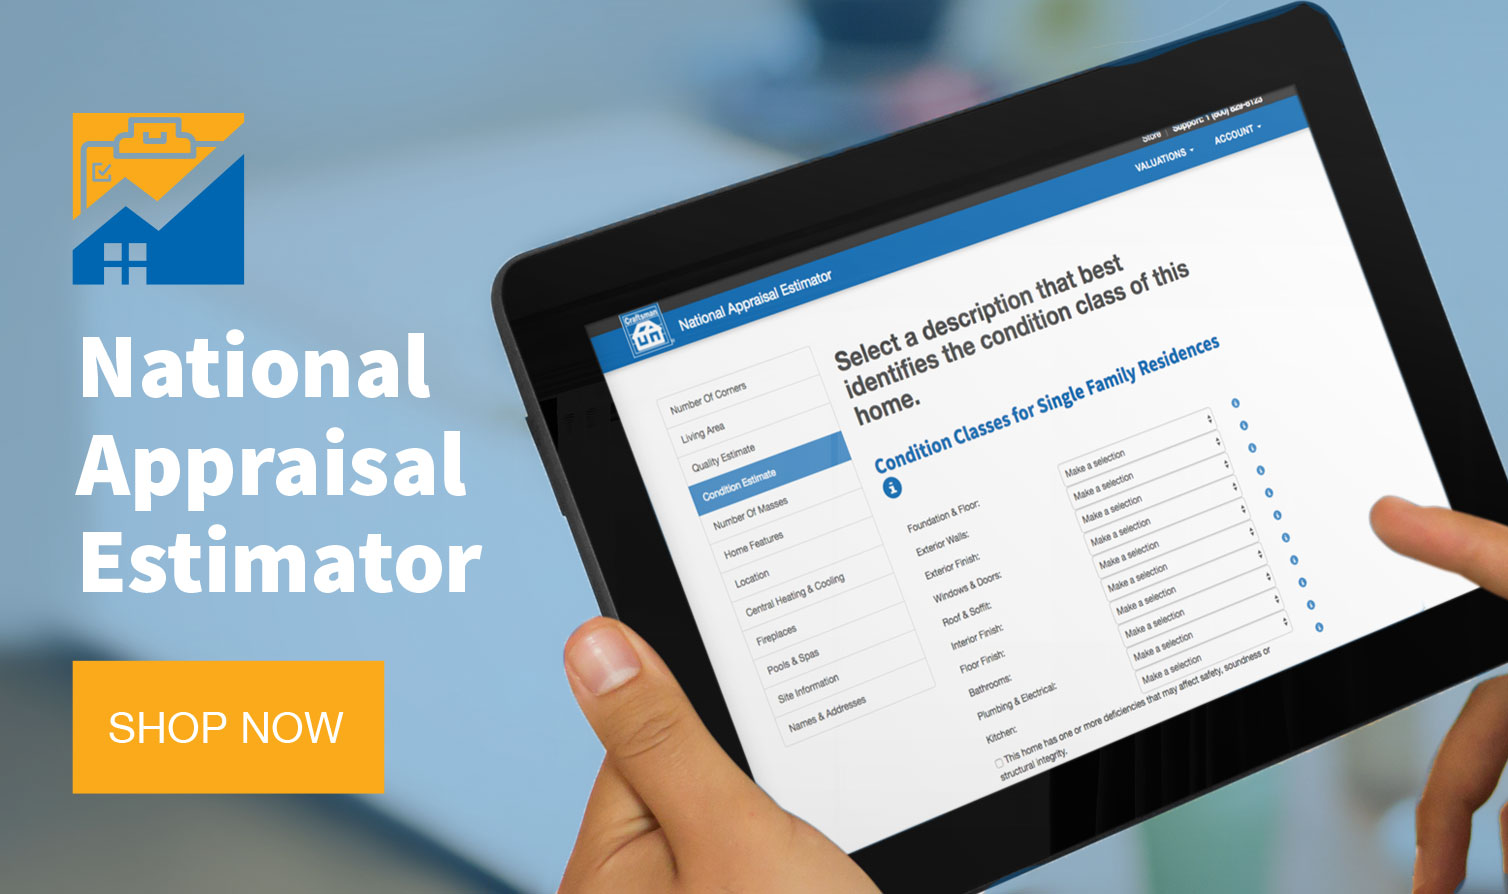 National Appraisal Estimator